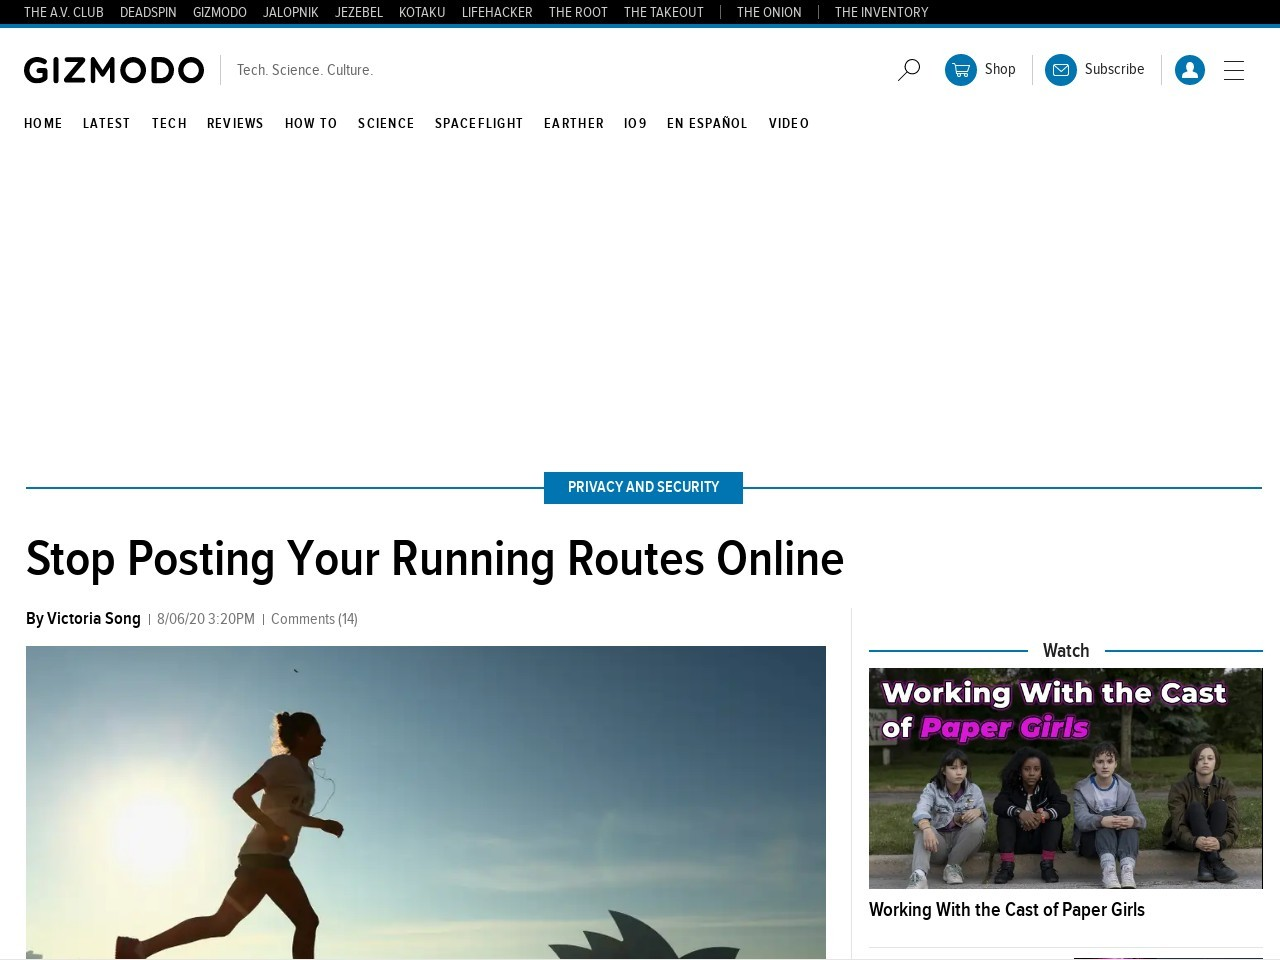 Stop Posting Your Running Routes Online